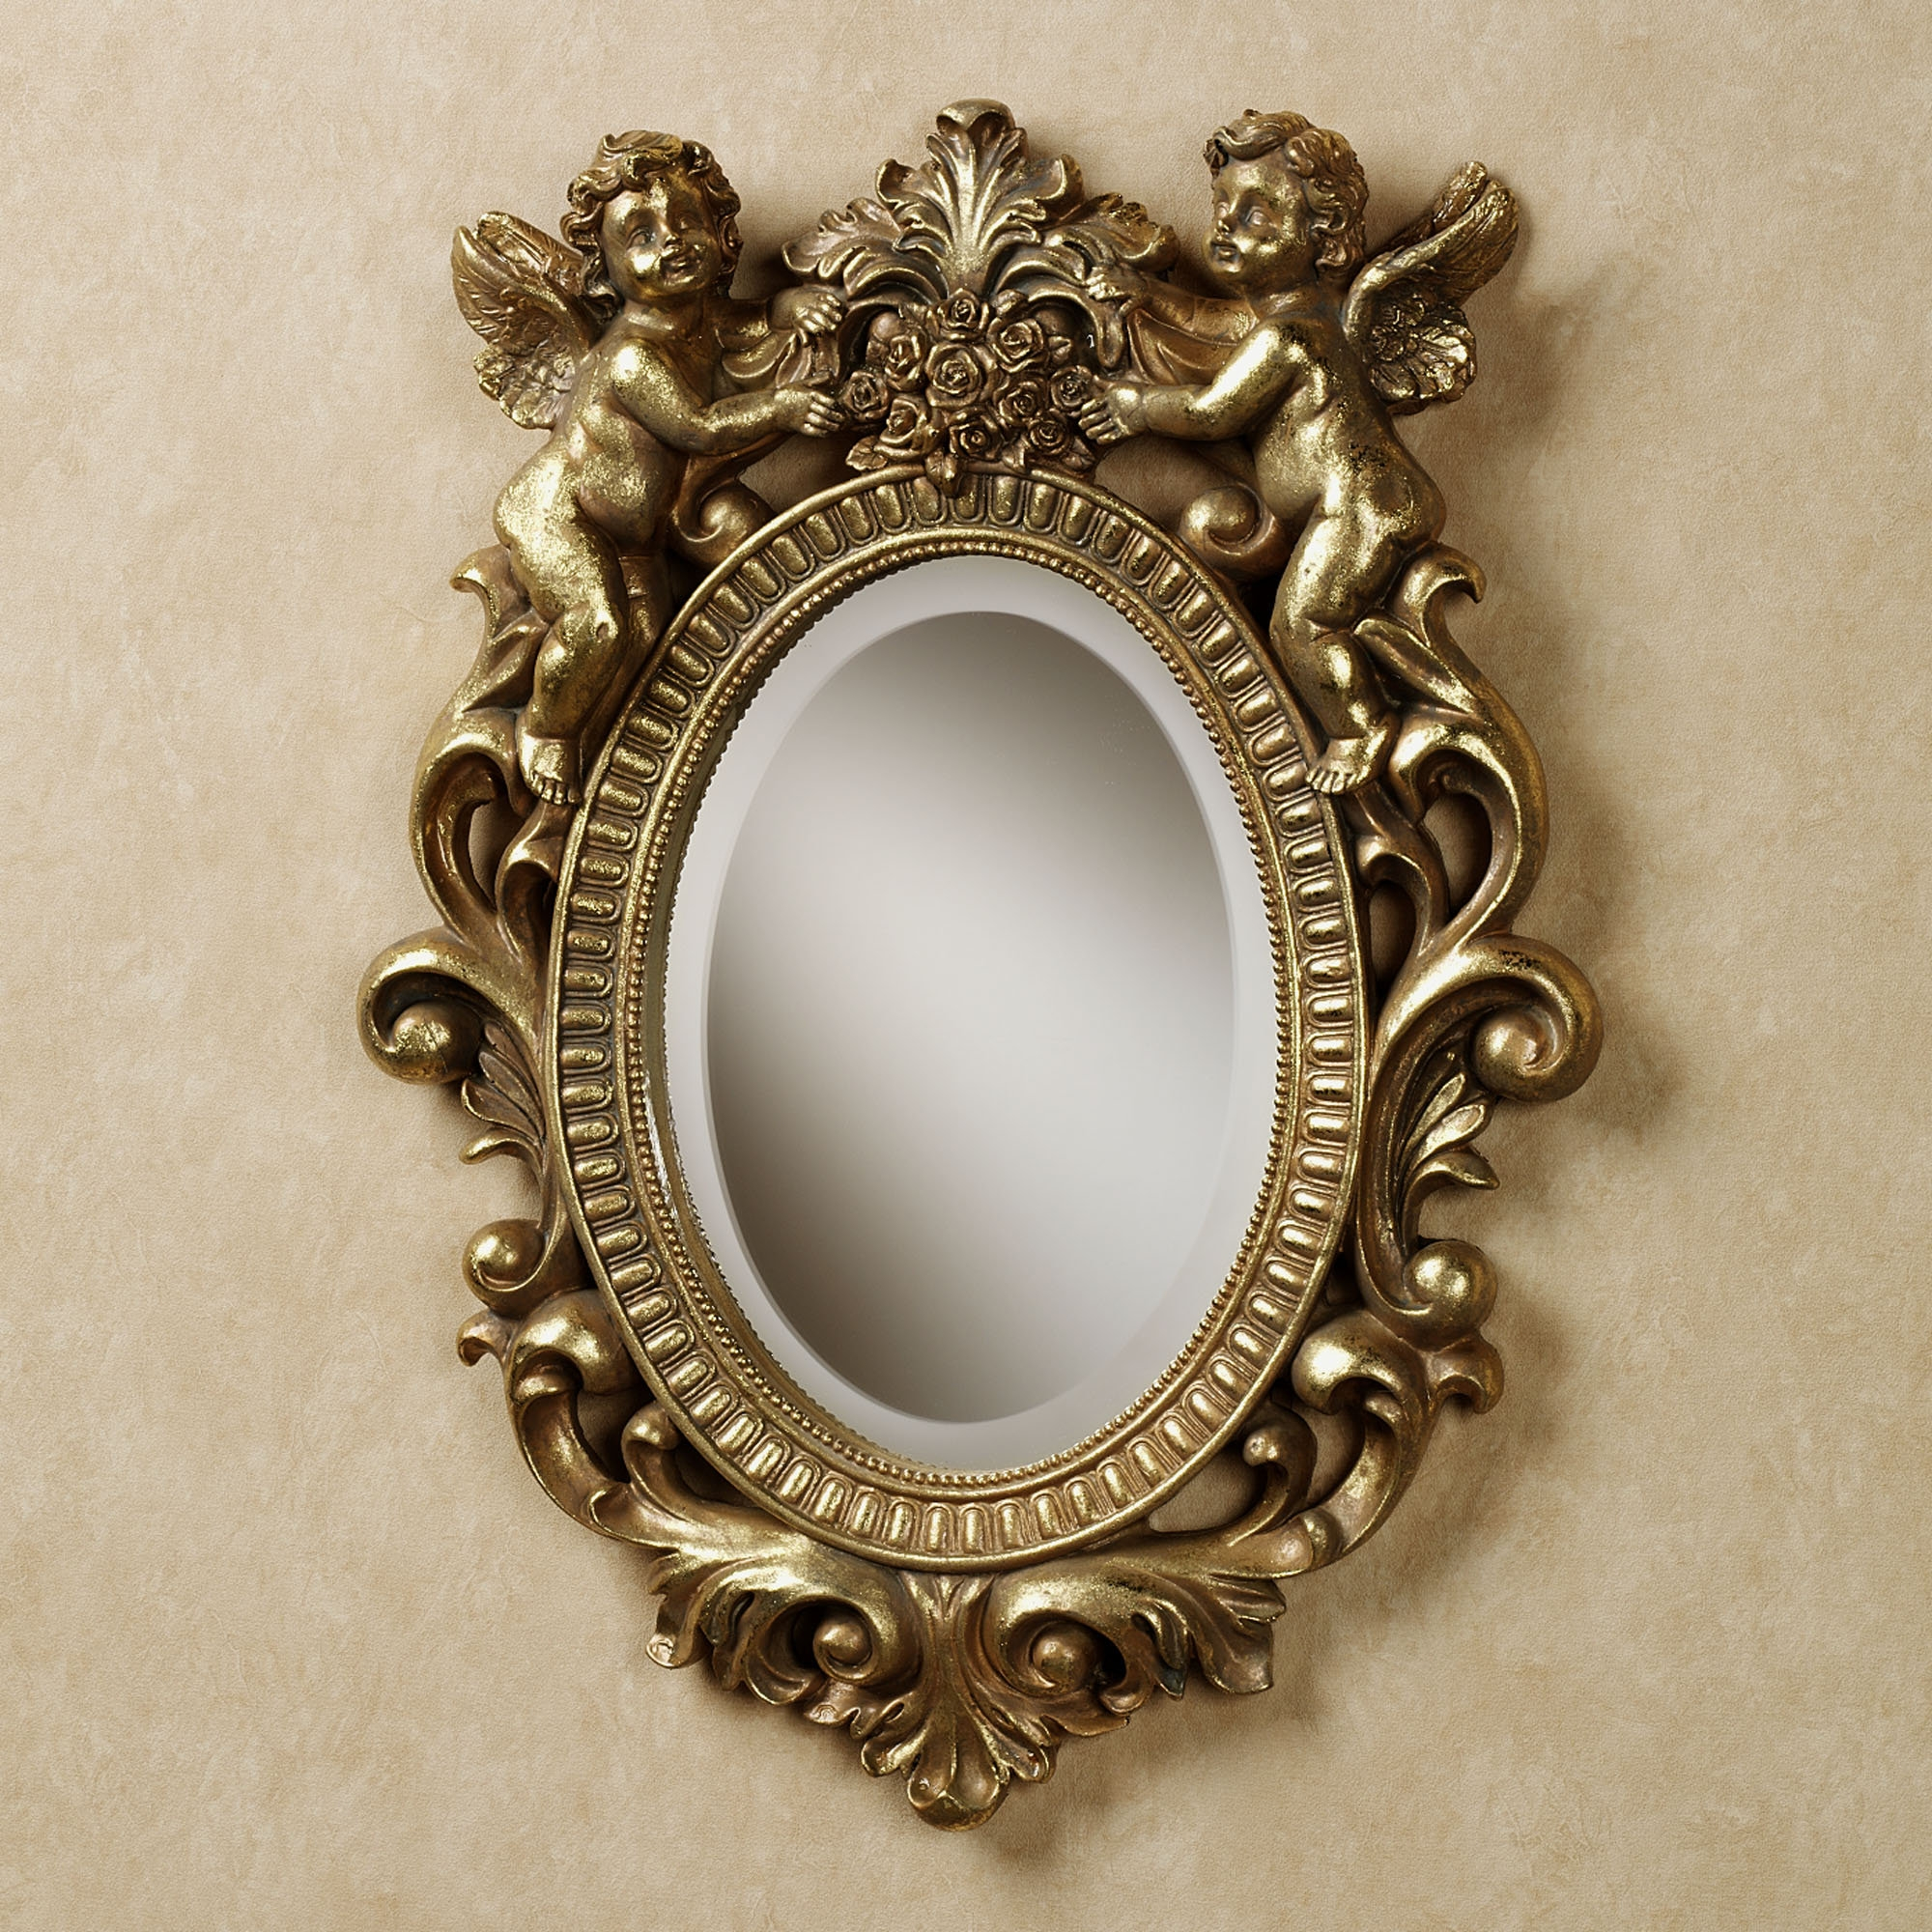 Home Decor Antique Wall Mirrorantique Mirrorwall Mirrordecor For Antique Wall Mirrors (Image 13 of 15)